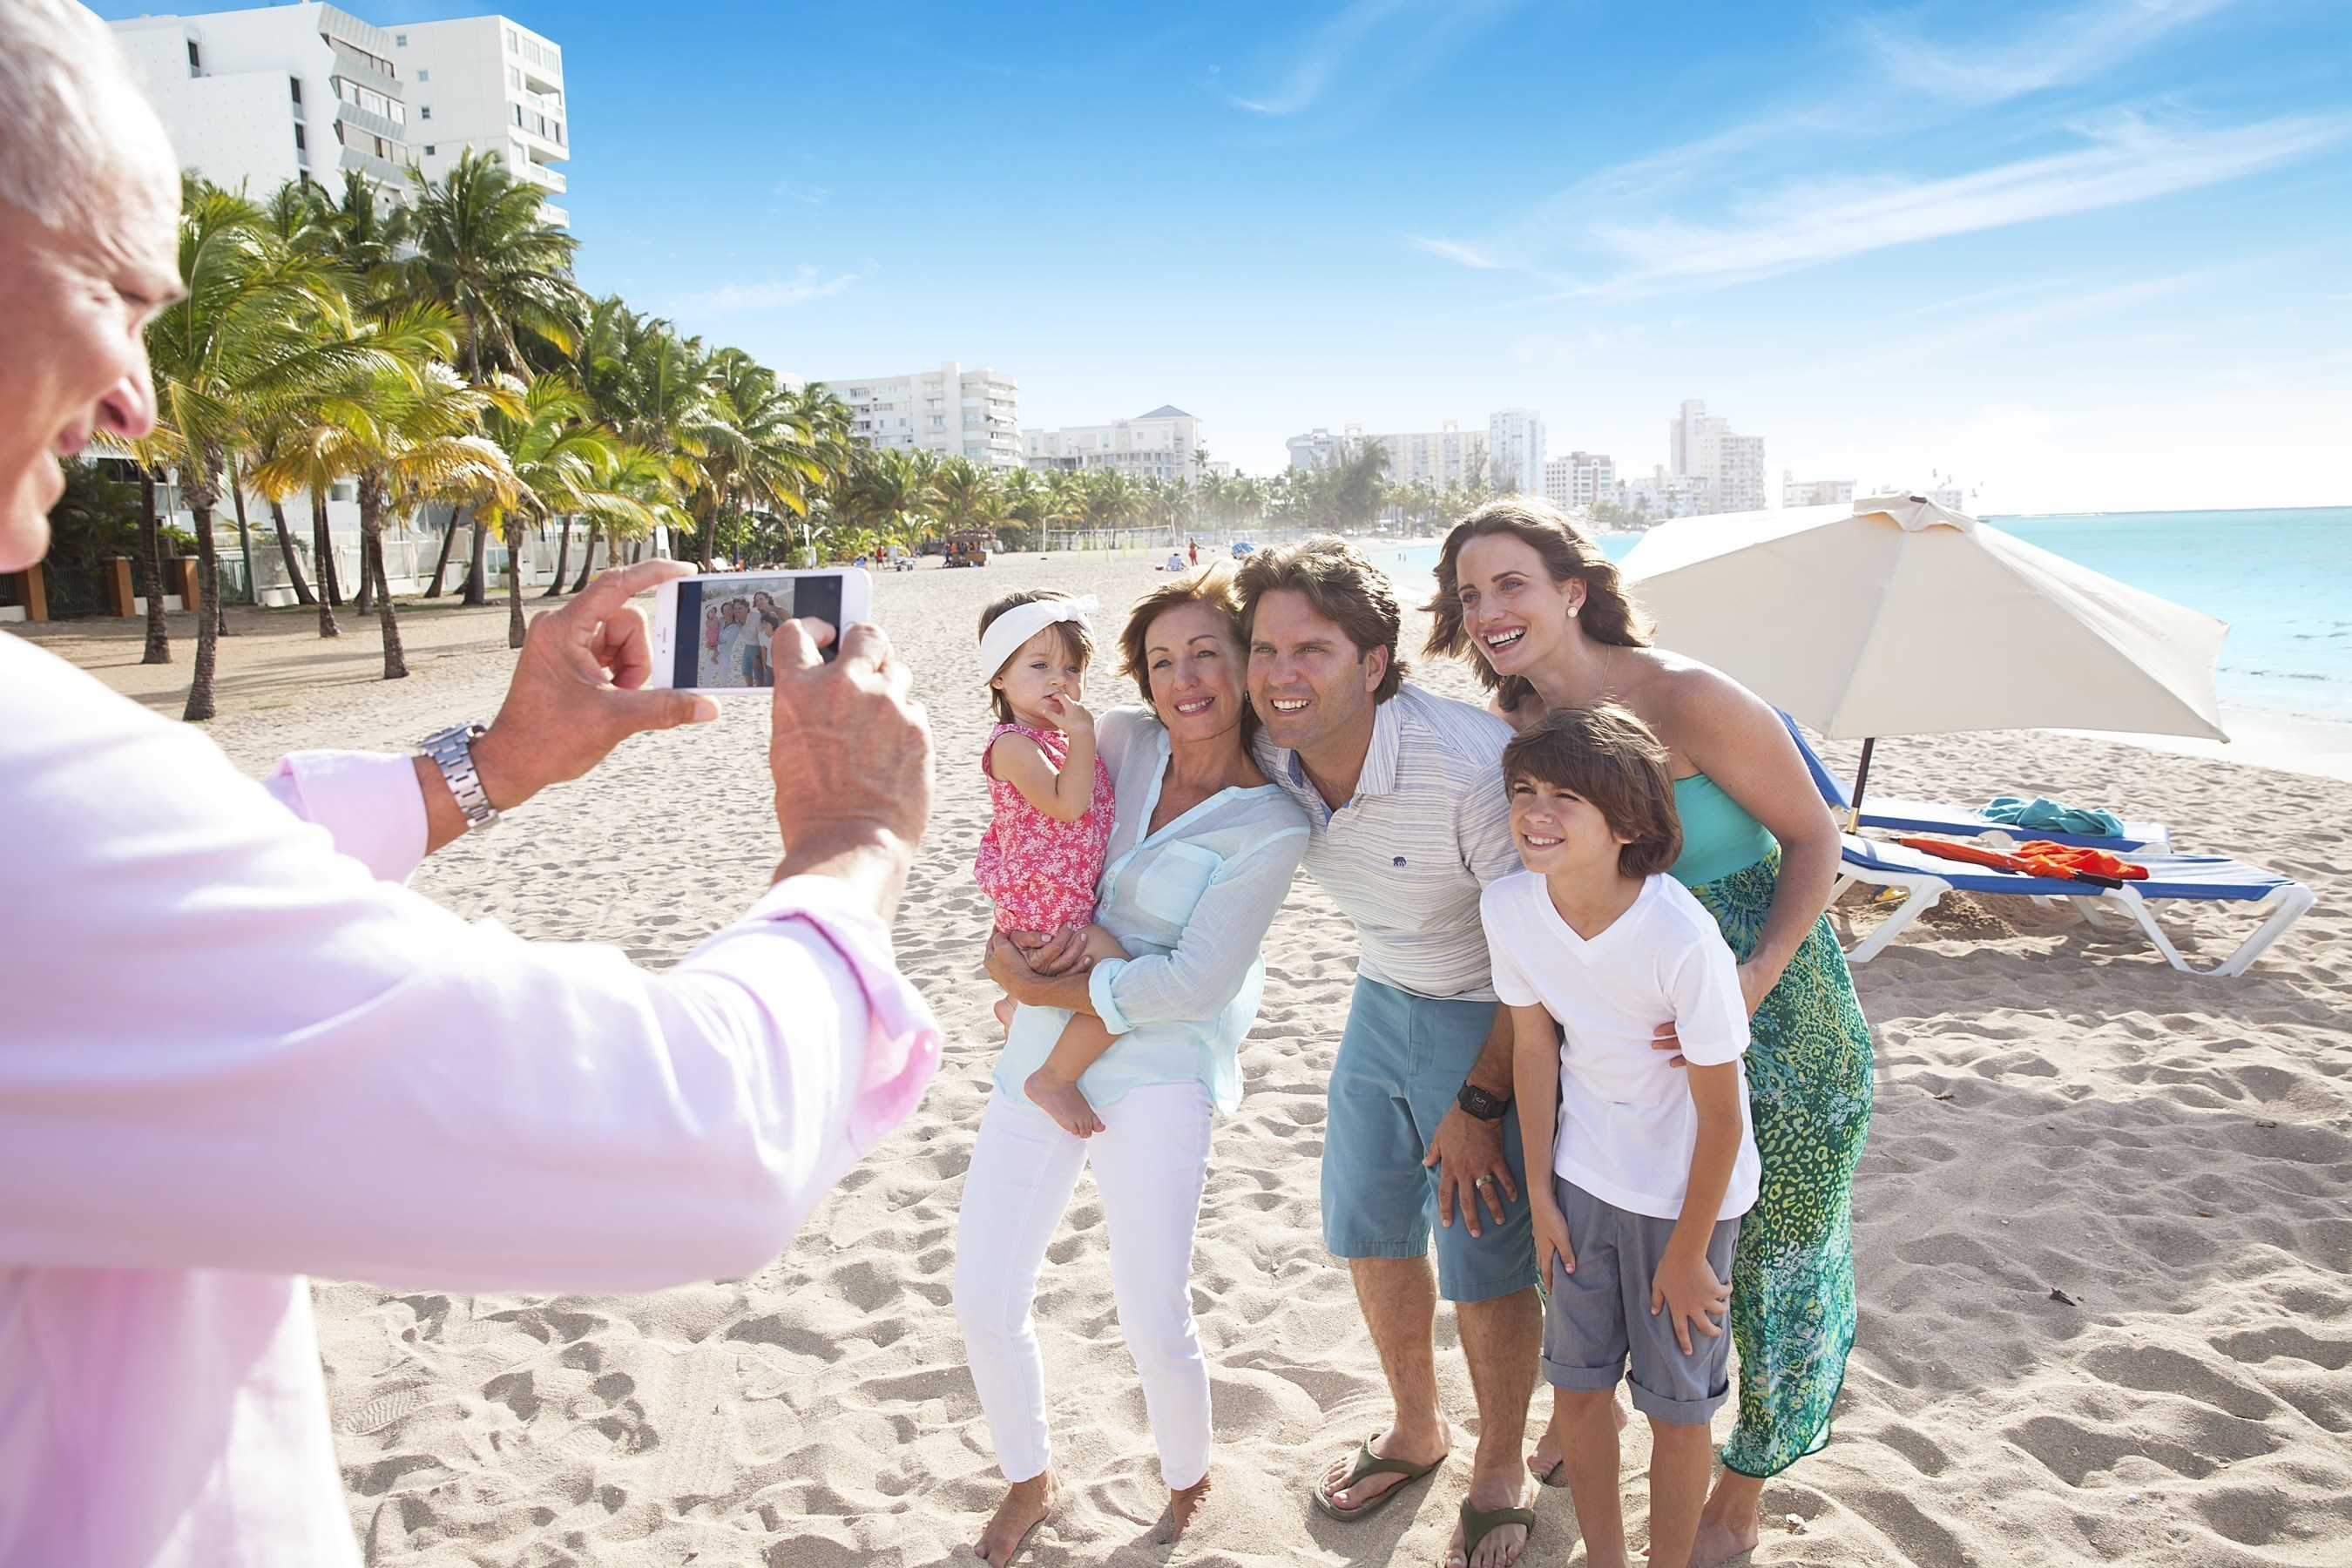 Puerto Rico prepared to host tourists for worry free vacation. (Photo Credit: Puerto Rico Tourism Company)